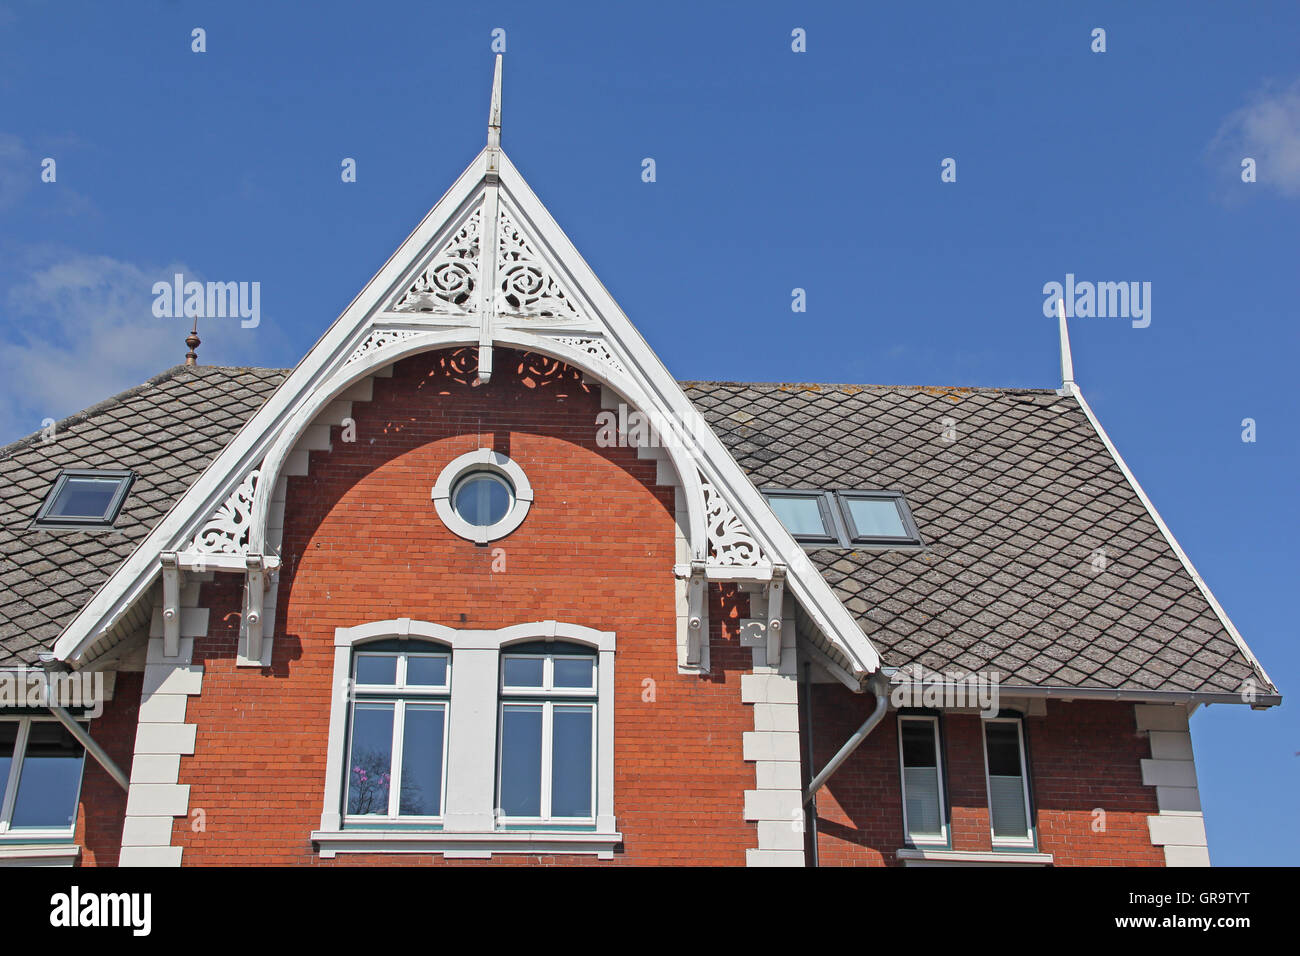 Roof Gable In Northern Germany - Stock Image